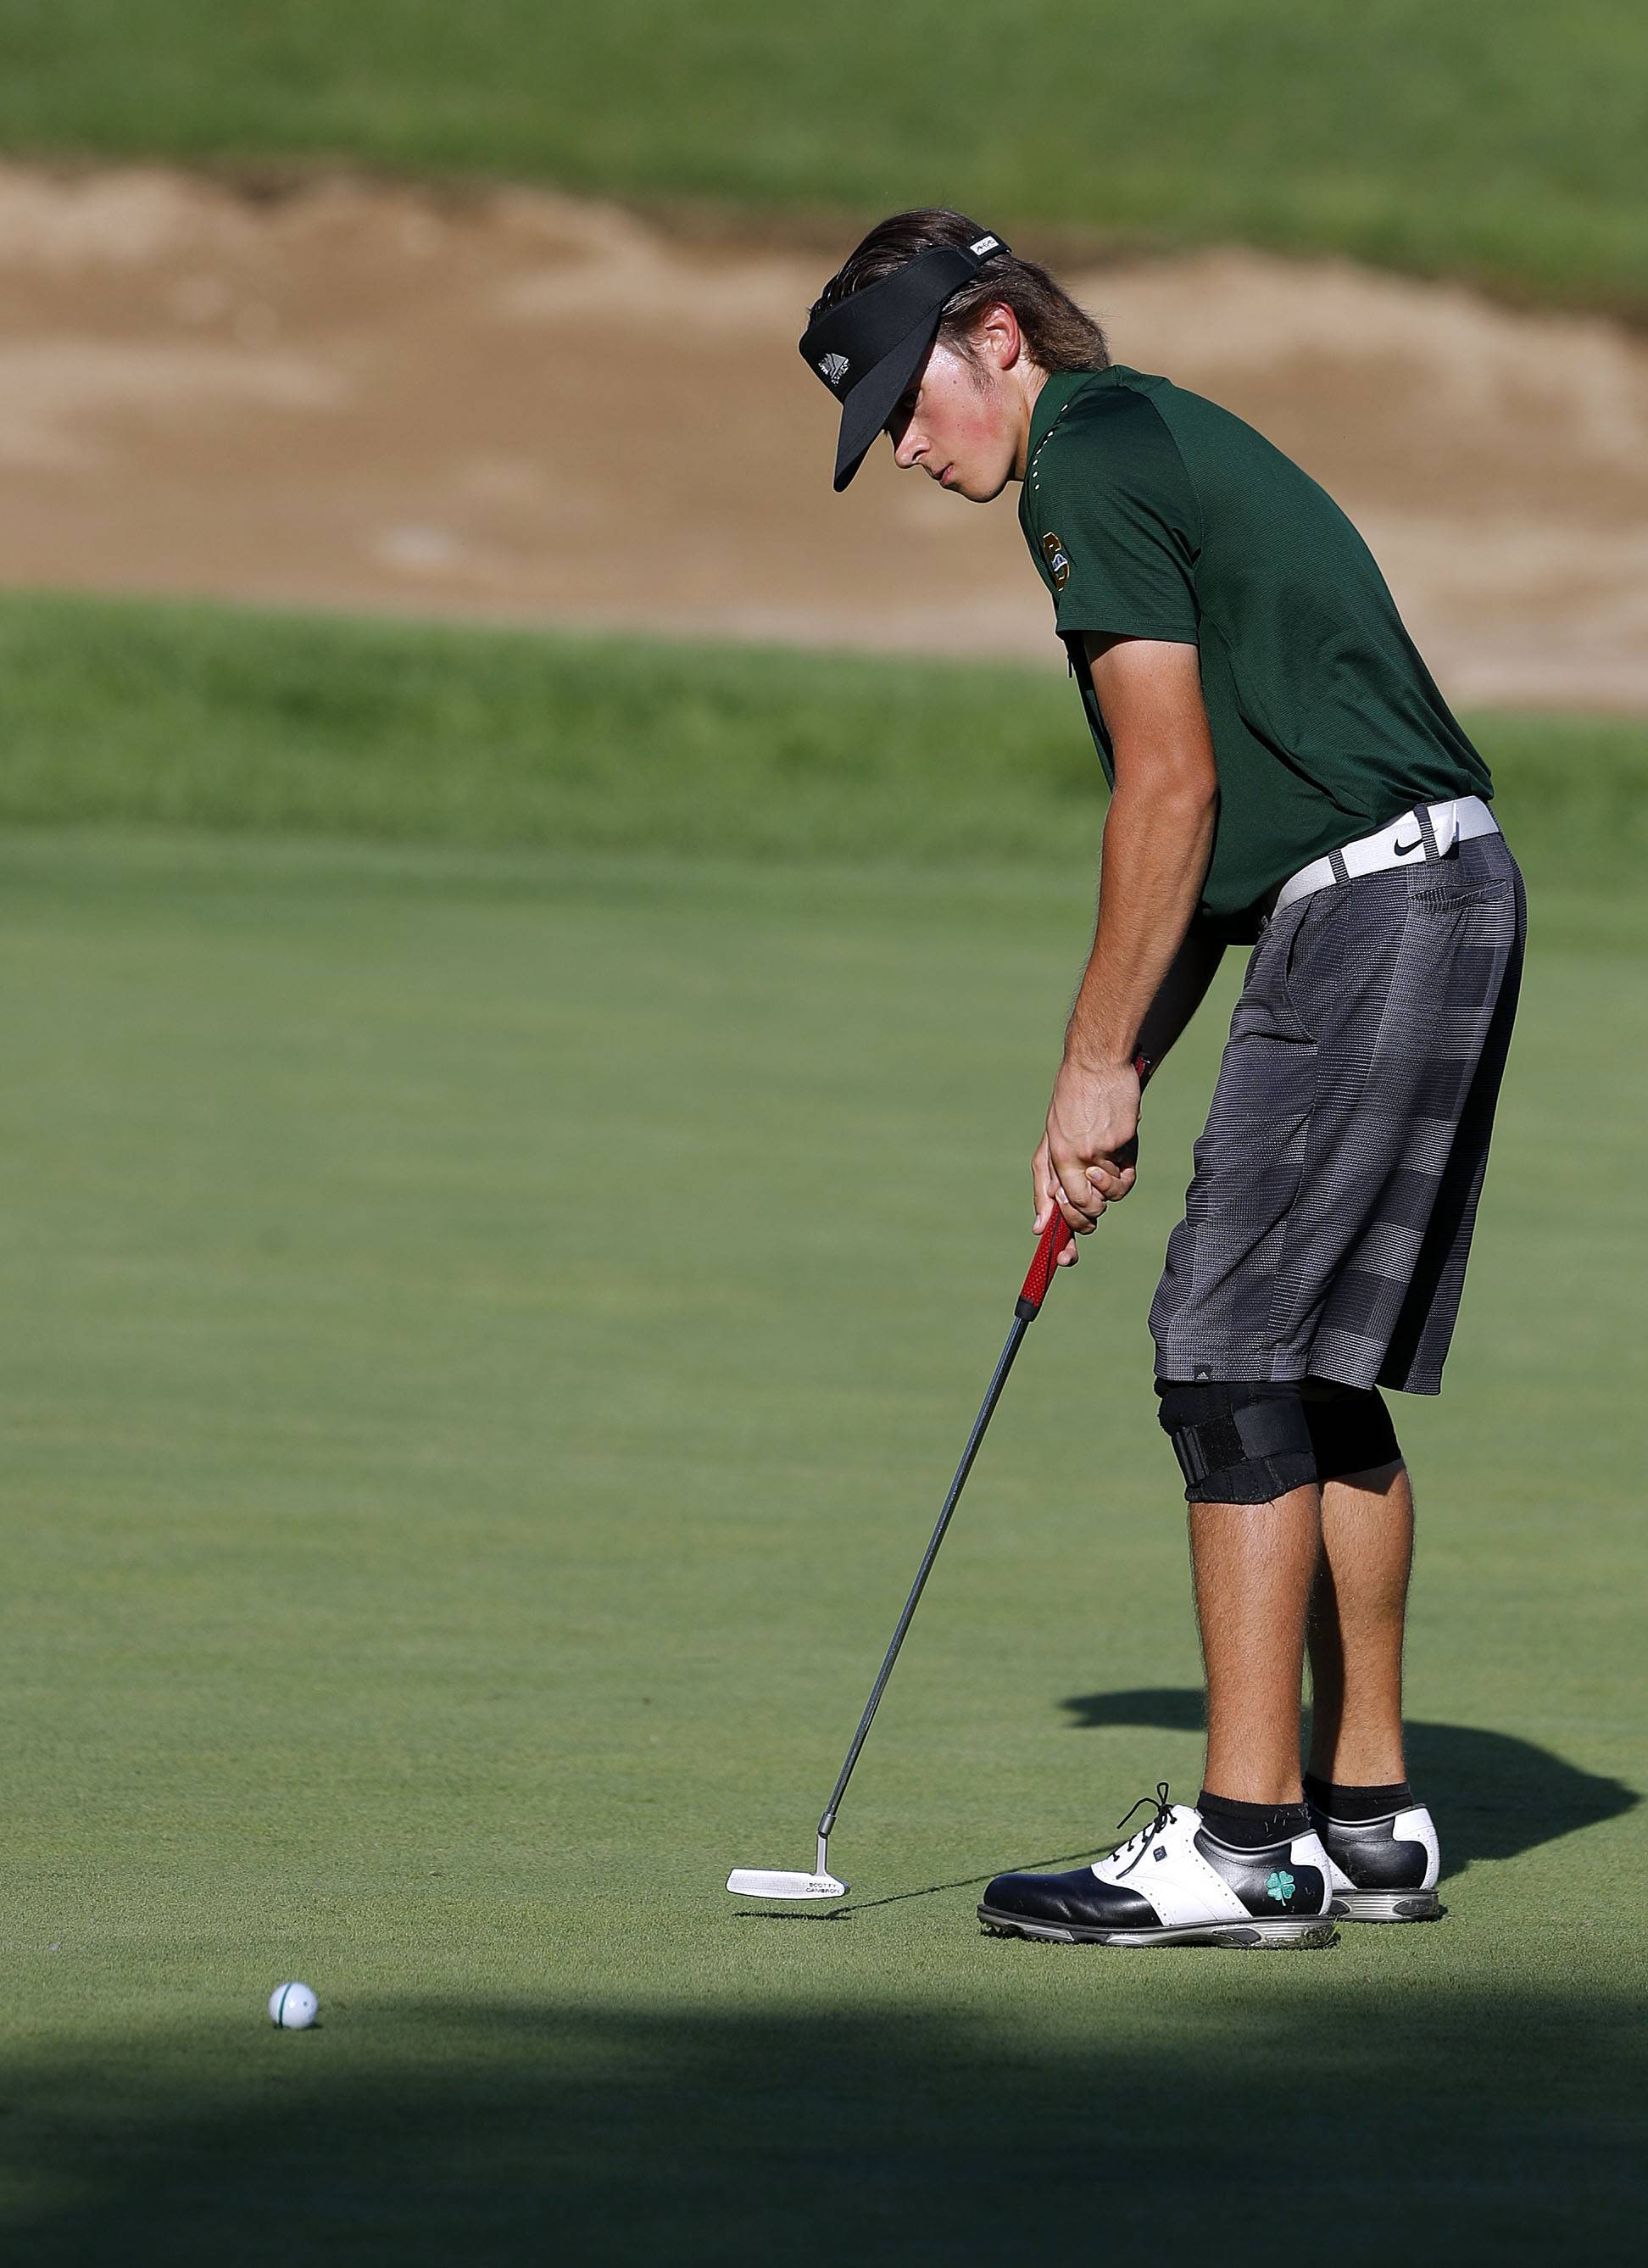 Stevenson's Mark Noonan putts on the third green during a match against Mundelein at Steeple Chase Golf Club this season. Noonan and the Patriots finished second in this past weekend's Class 3A state tournament in Bloomington.